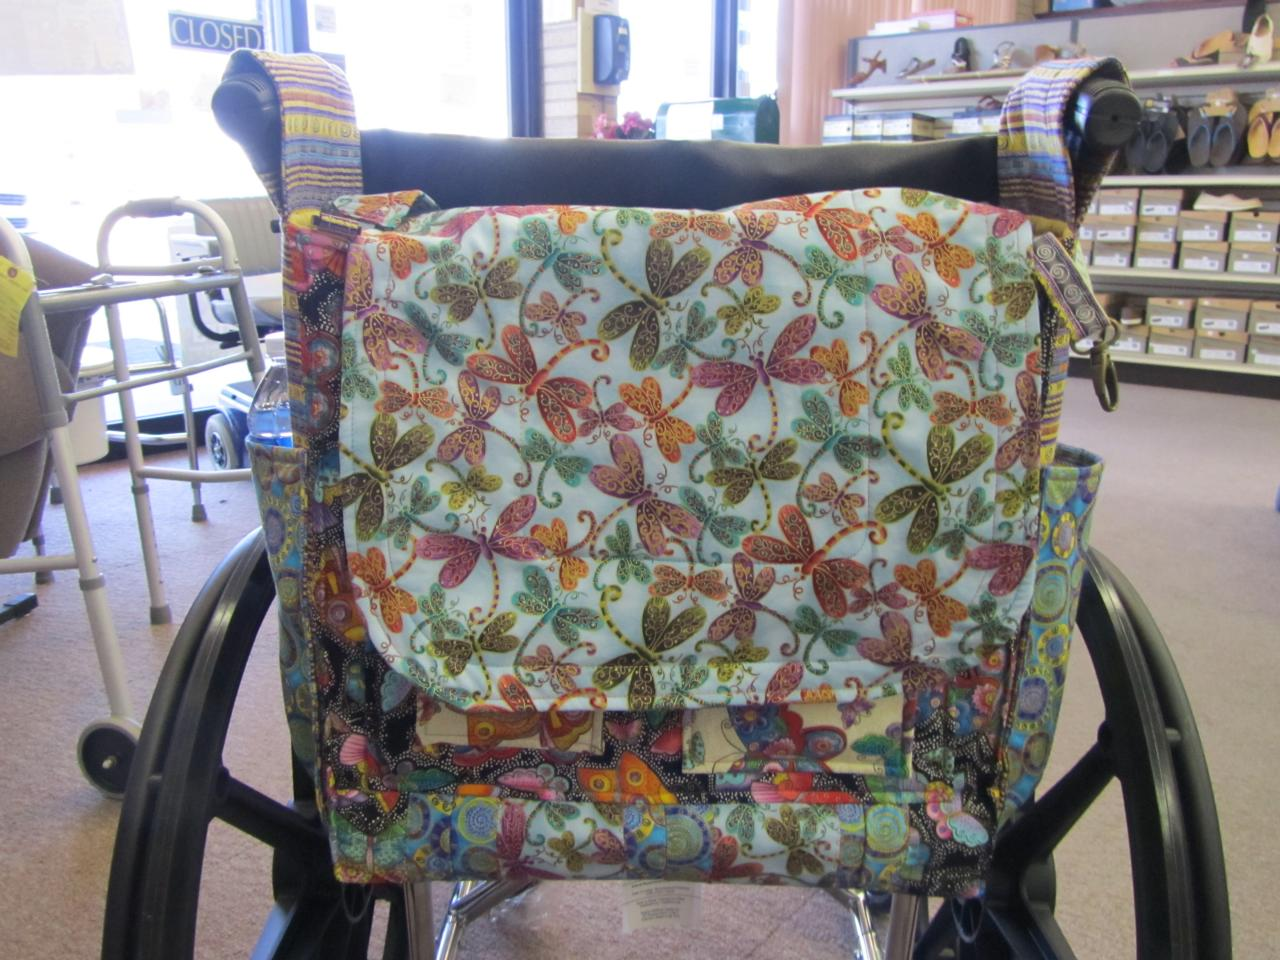 tank chair wheelchair hanging images lizzy gail bags oxygen coverwheelchair bag